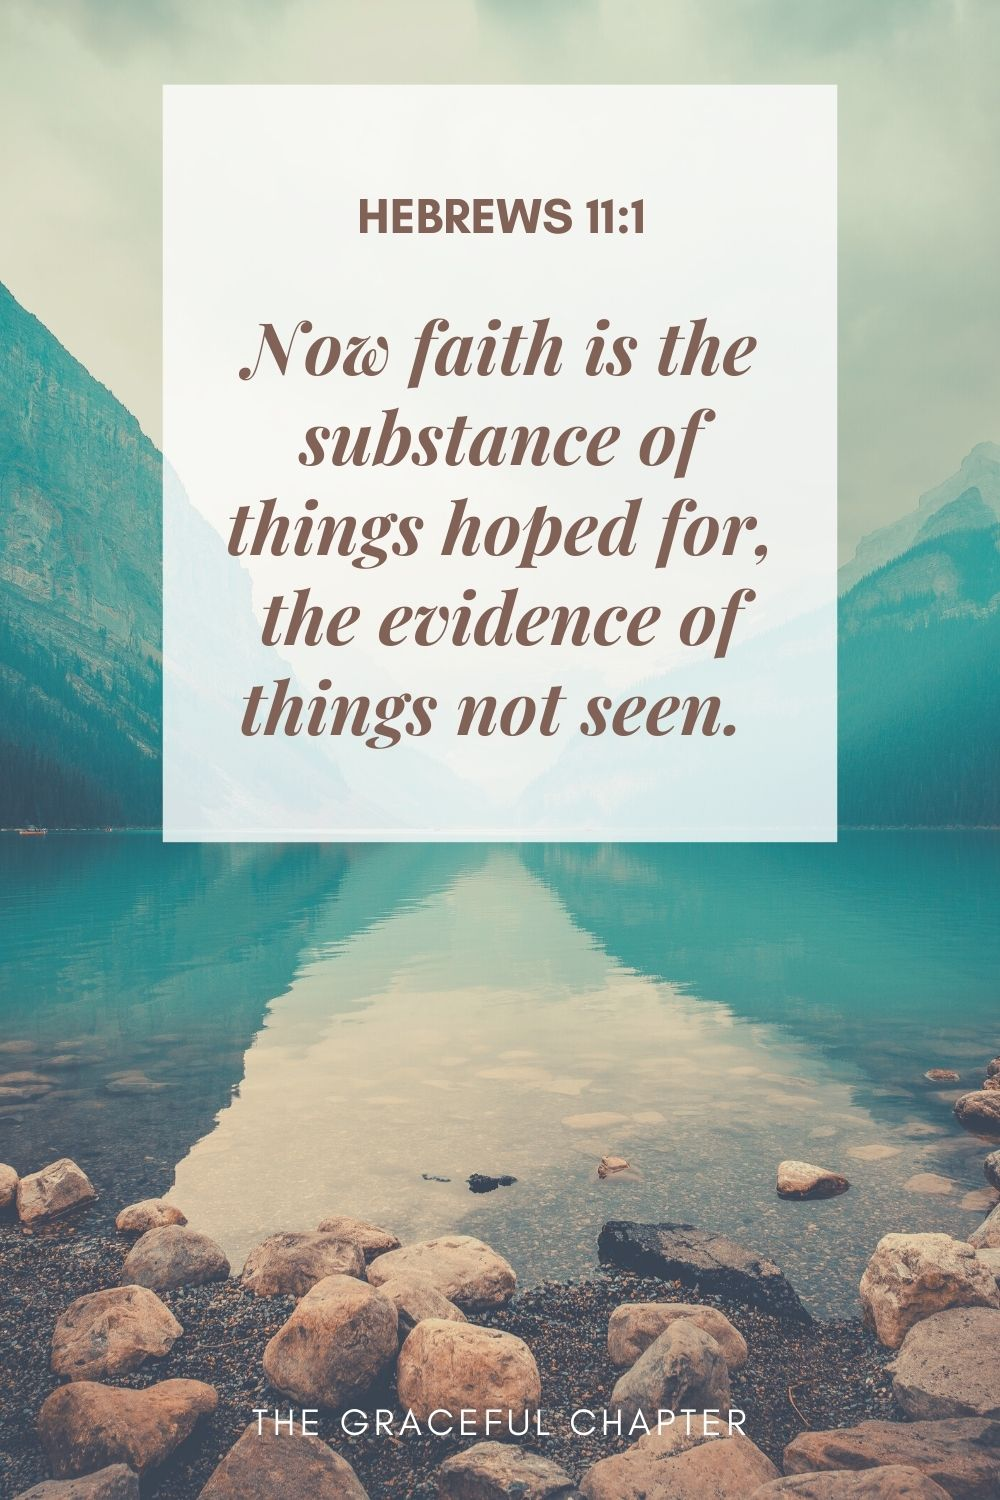 Now faith is the substance of things hoped for, the evidence of things not seen.  Hebrews 11:1